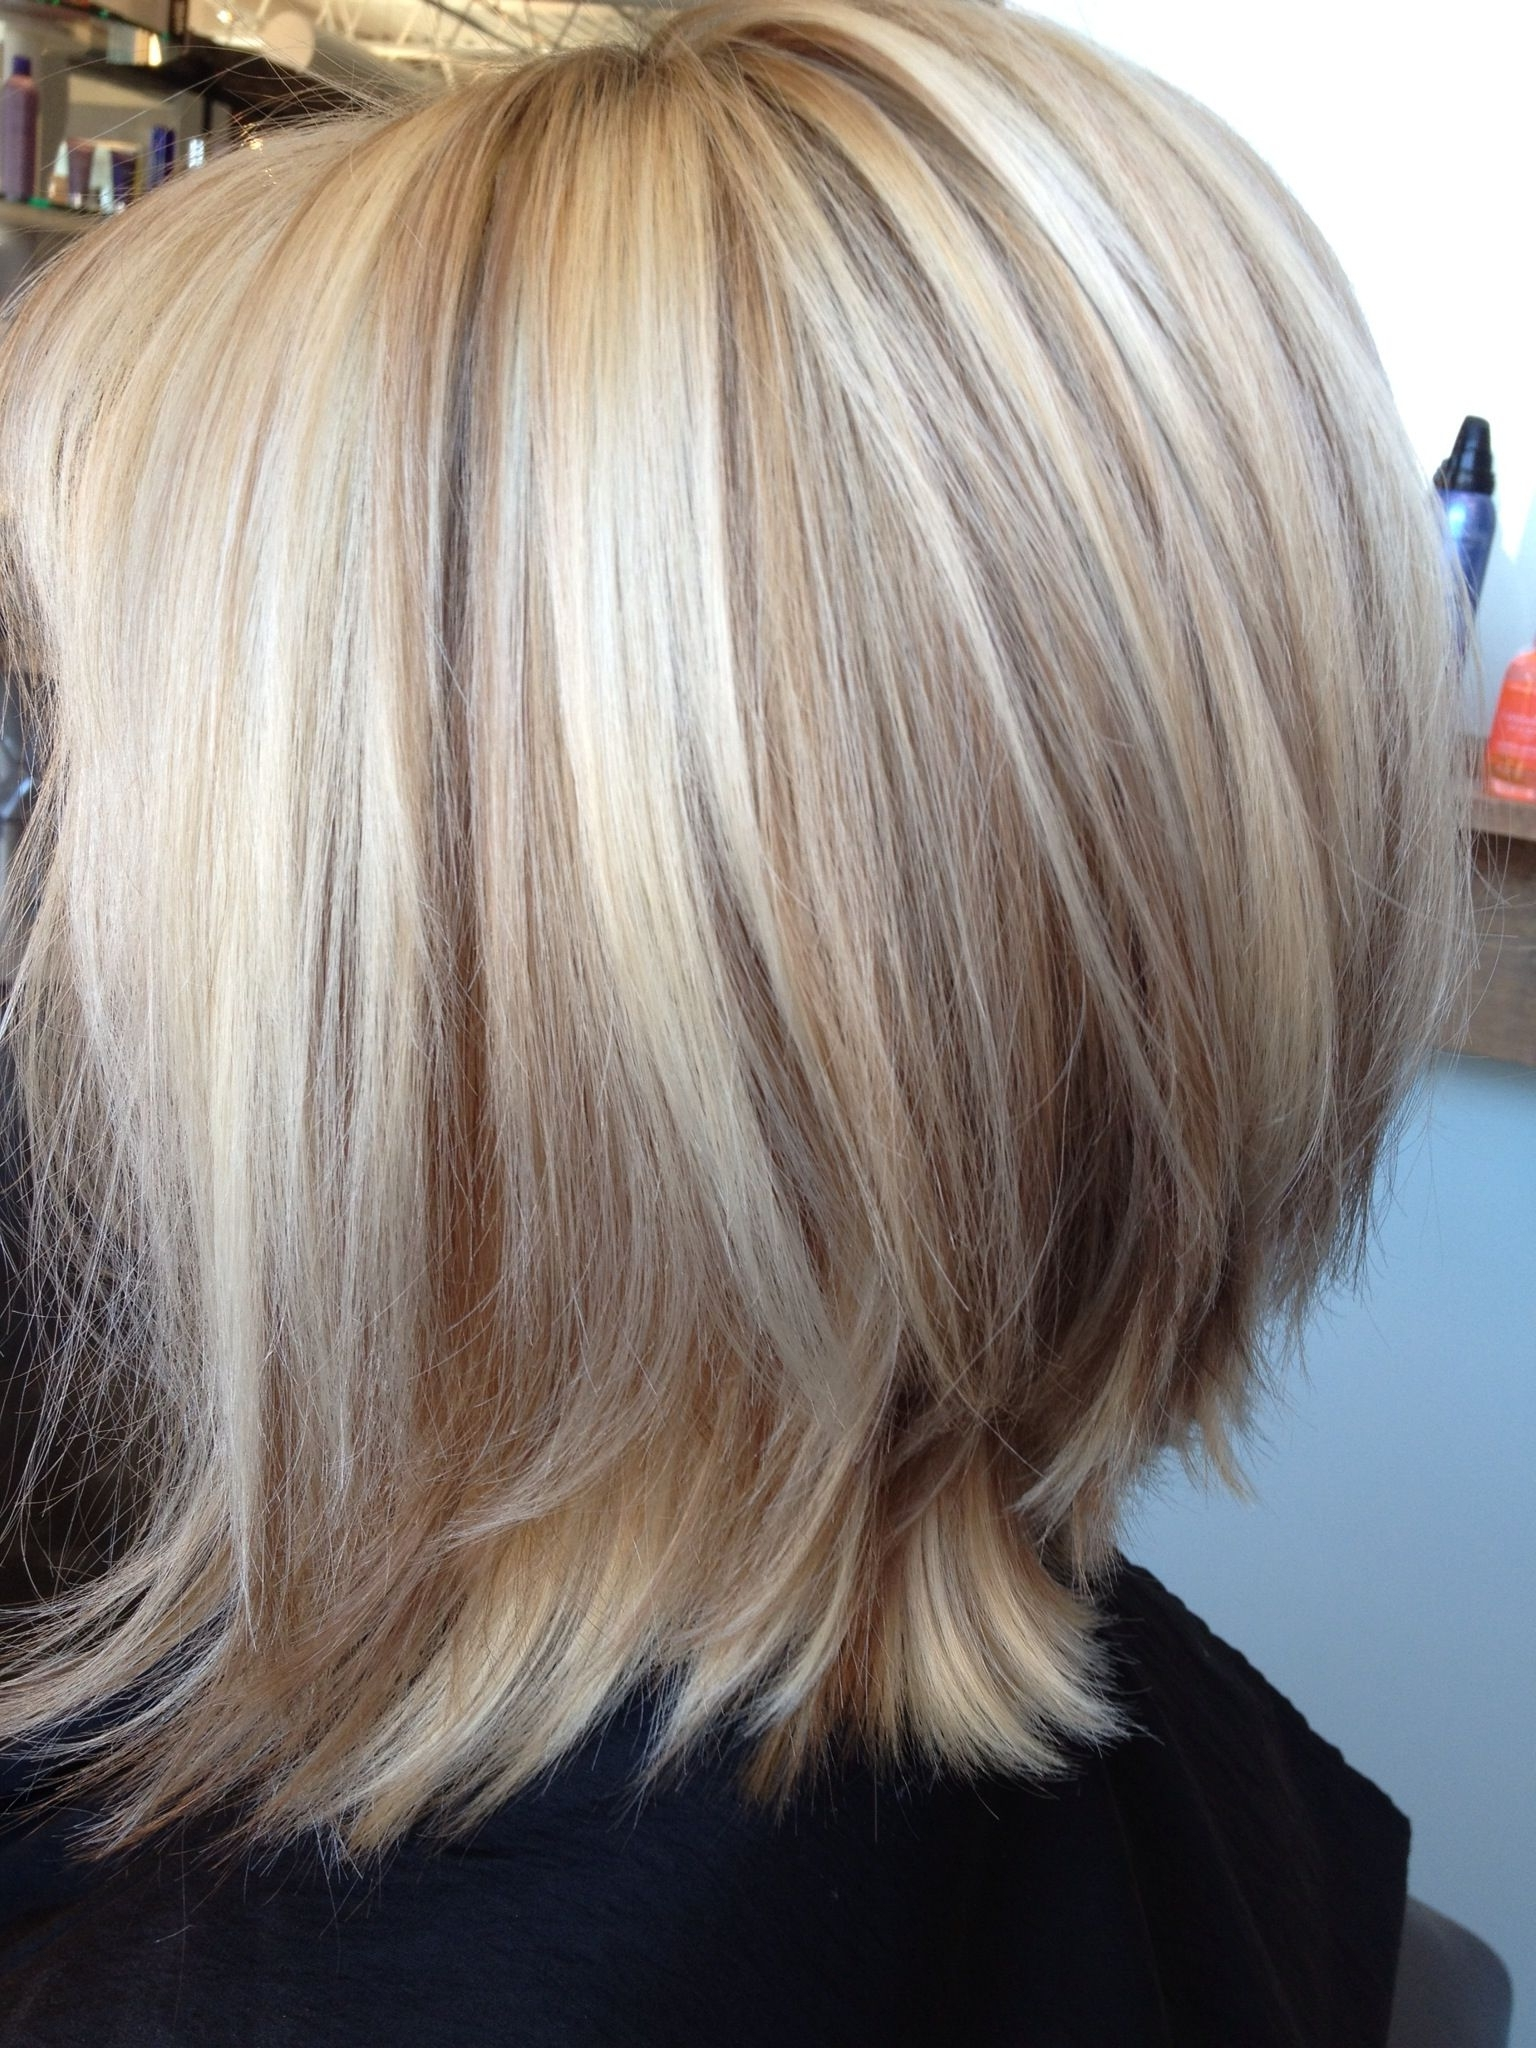 Most Recently Released Asymmetry Blonde Bob Hairstyles Enhanced By Color Intended For Gorgeous Blonde Bob With Lowlights (View 9 of 20)